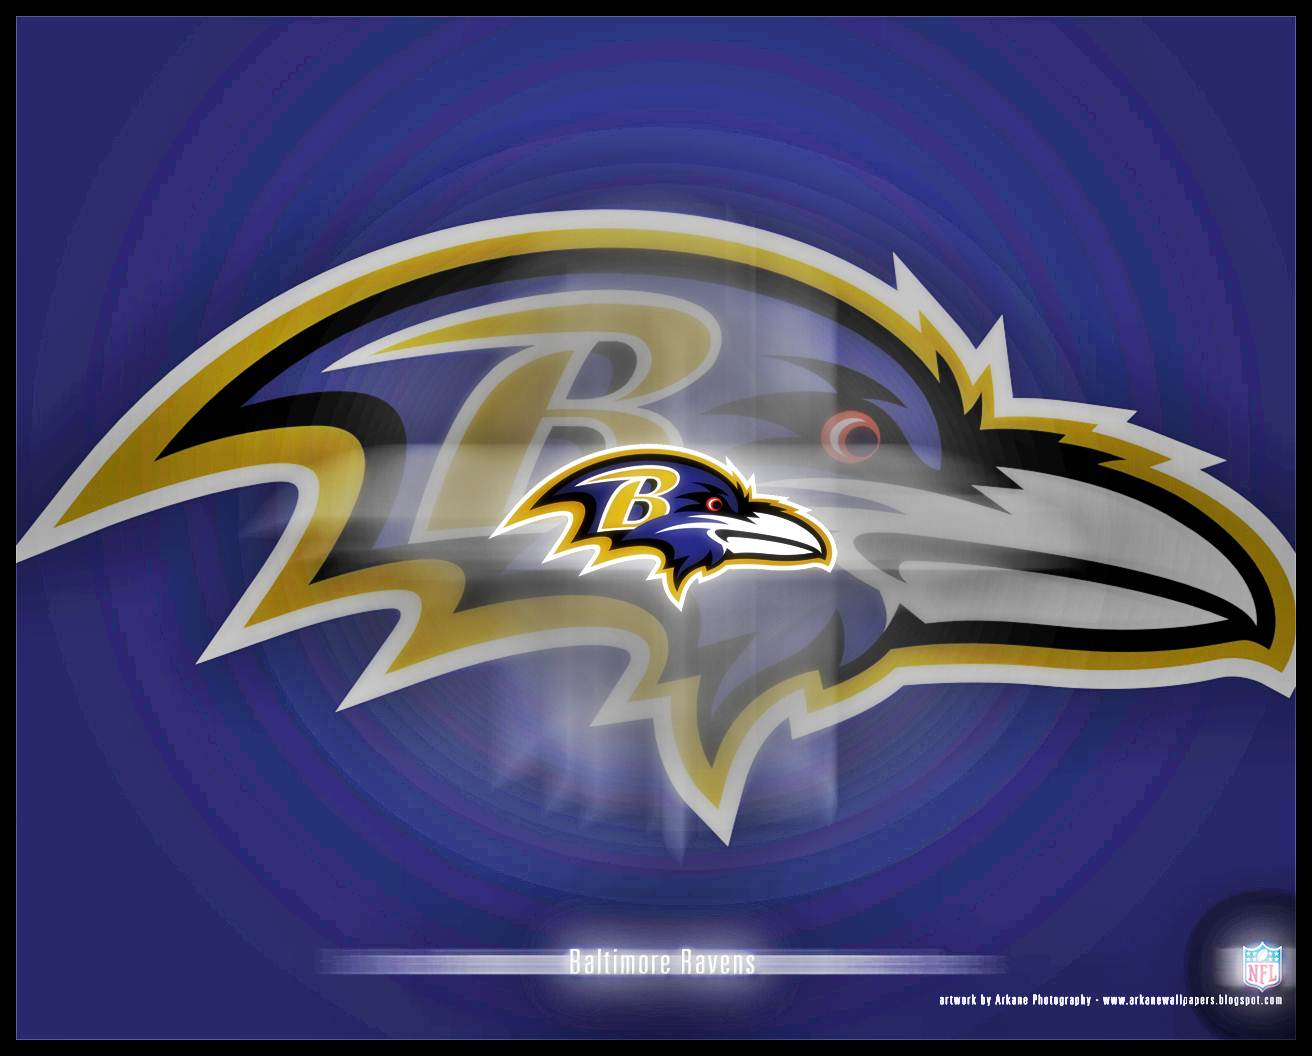 Baltimore Ravens Background Pictures to Pin on Pinterest - PinsDaddy